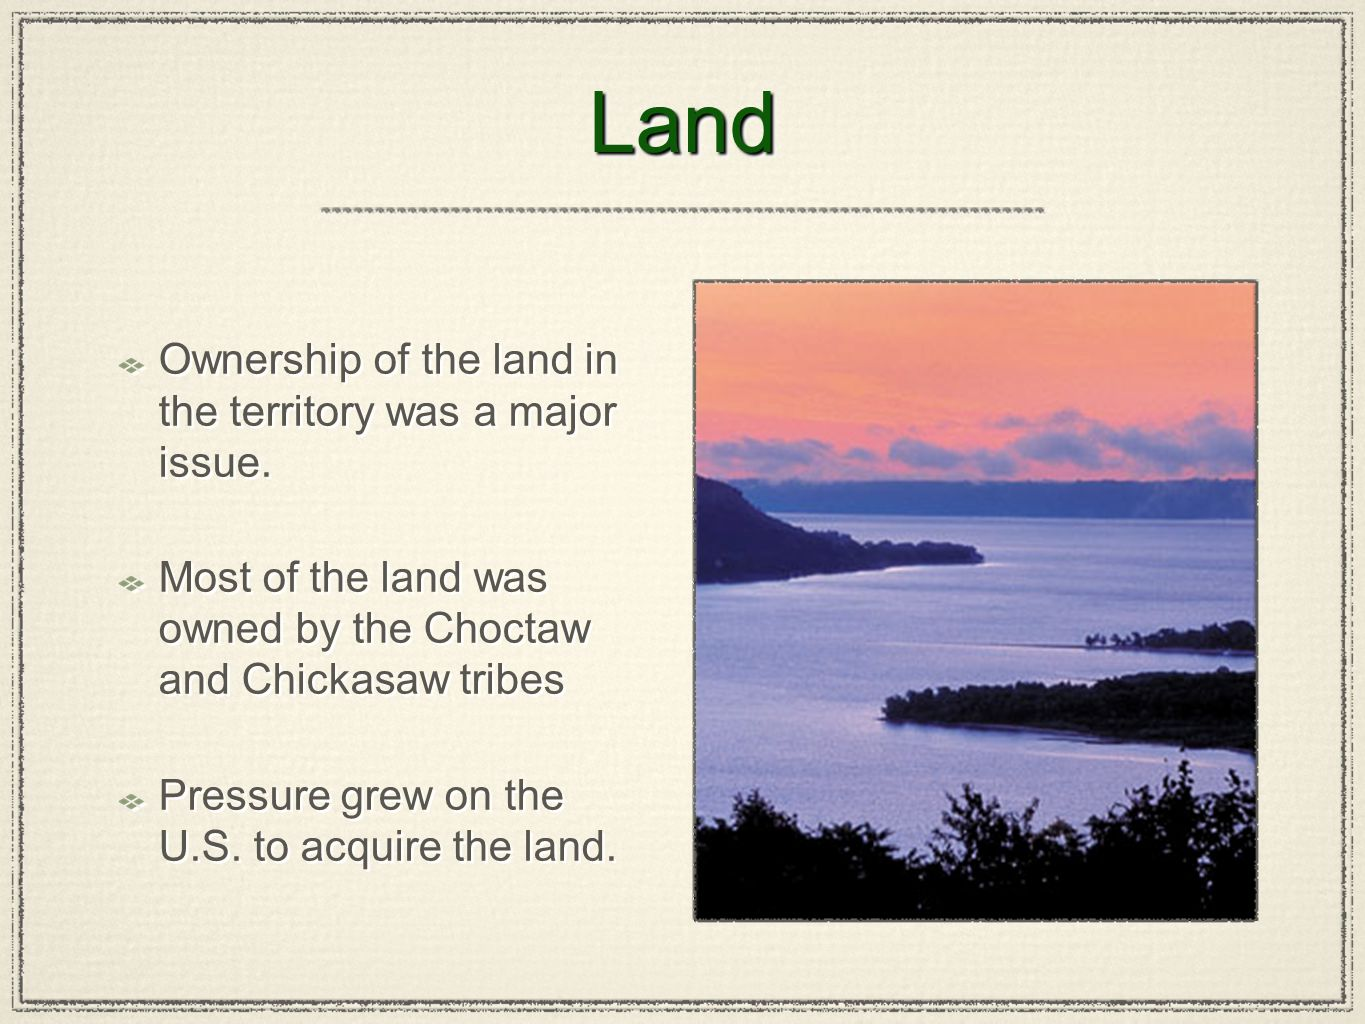 LandLand Ownership of the land in the territory was a major issue. Most of the land was owned by the Choctaw and Chickasaw tribes Pressure grew on the